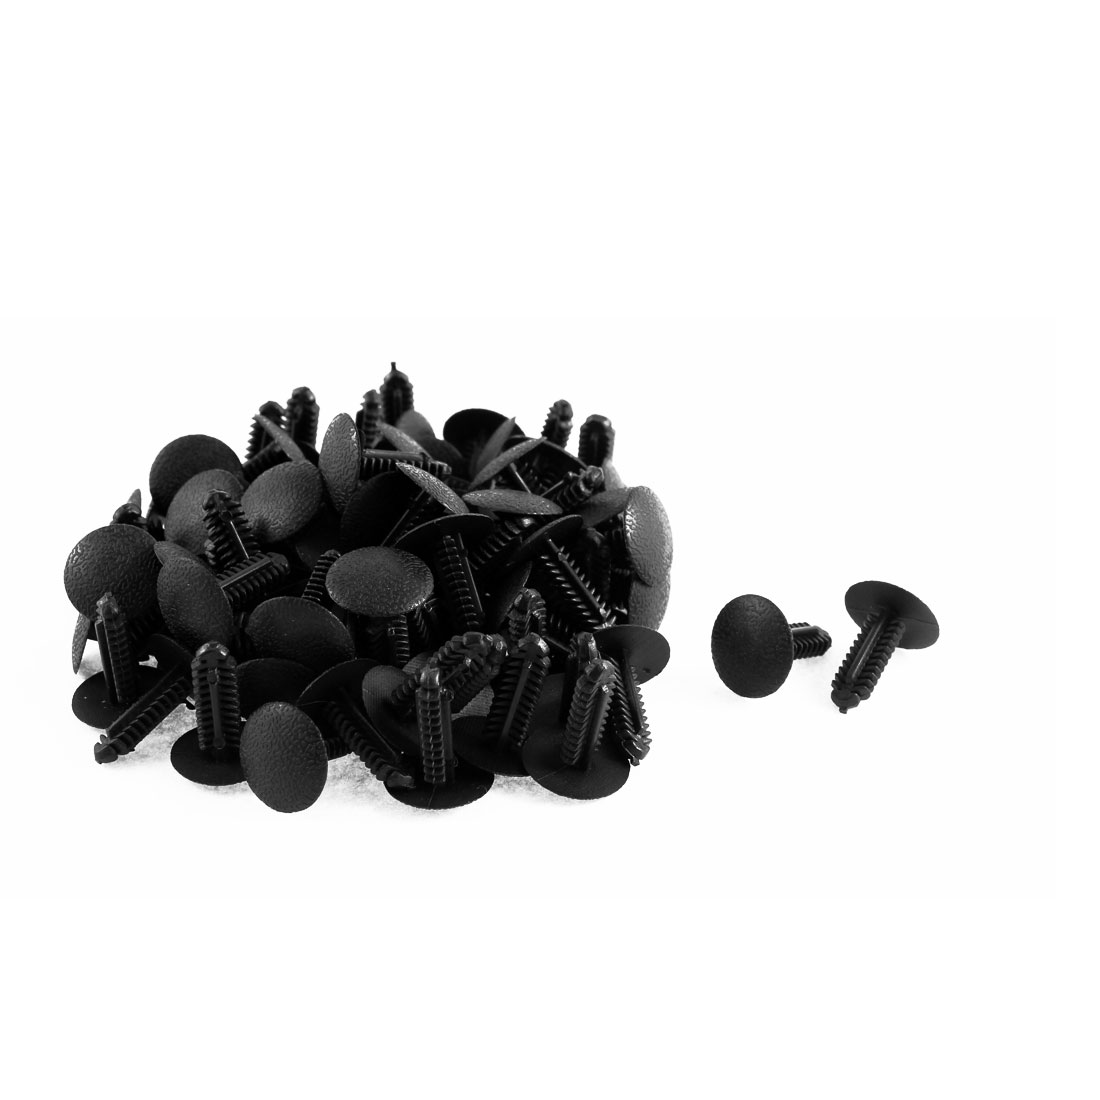 82 Pcs Black Plastic Splash Guard Push-Type Rivets for Ford